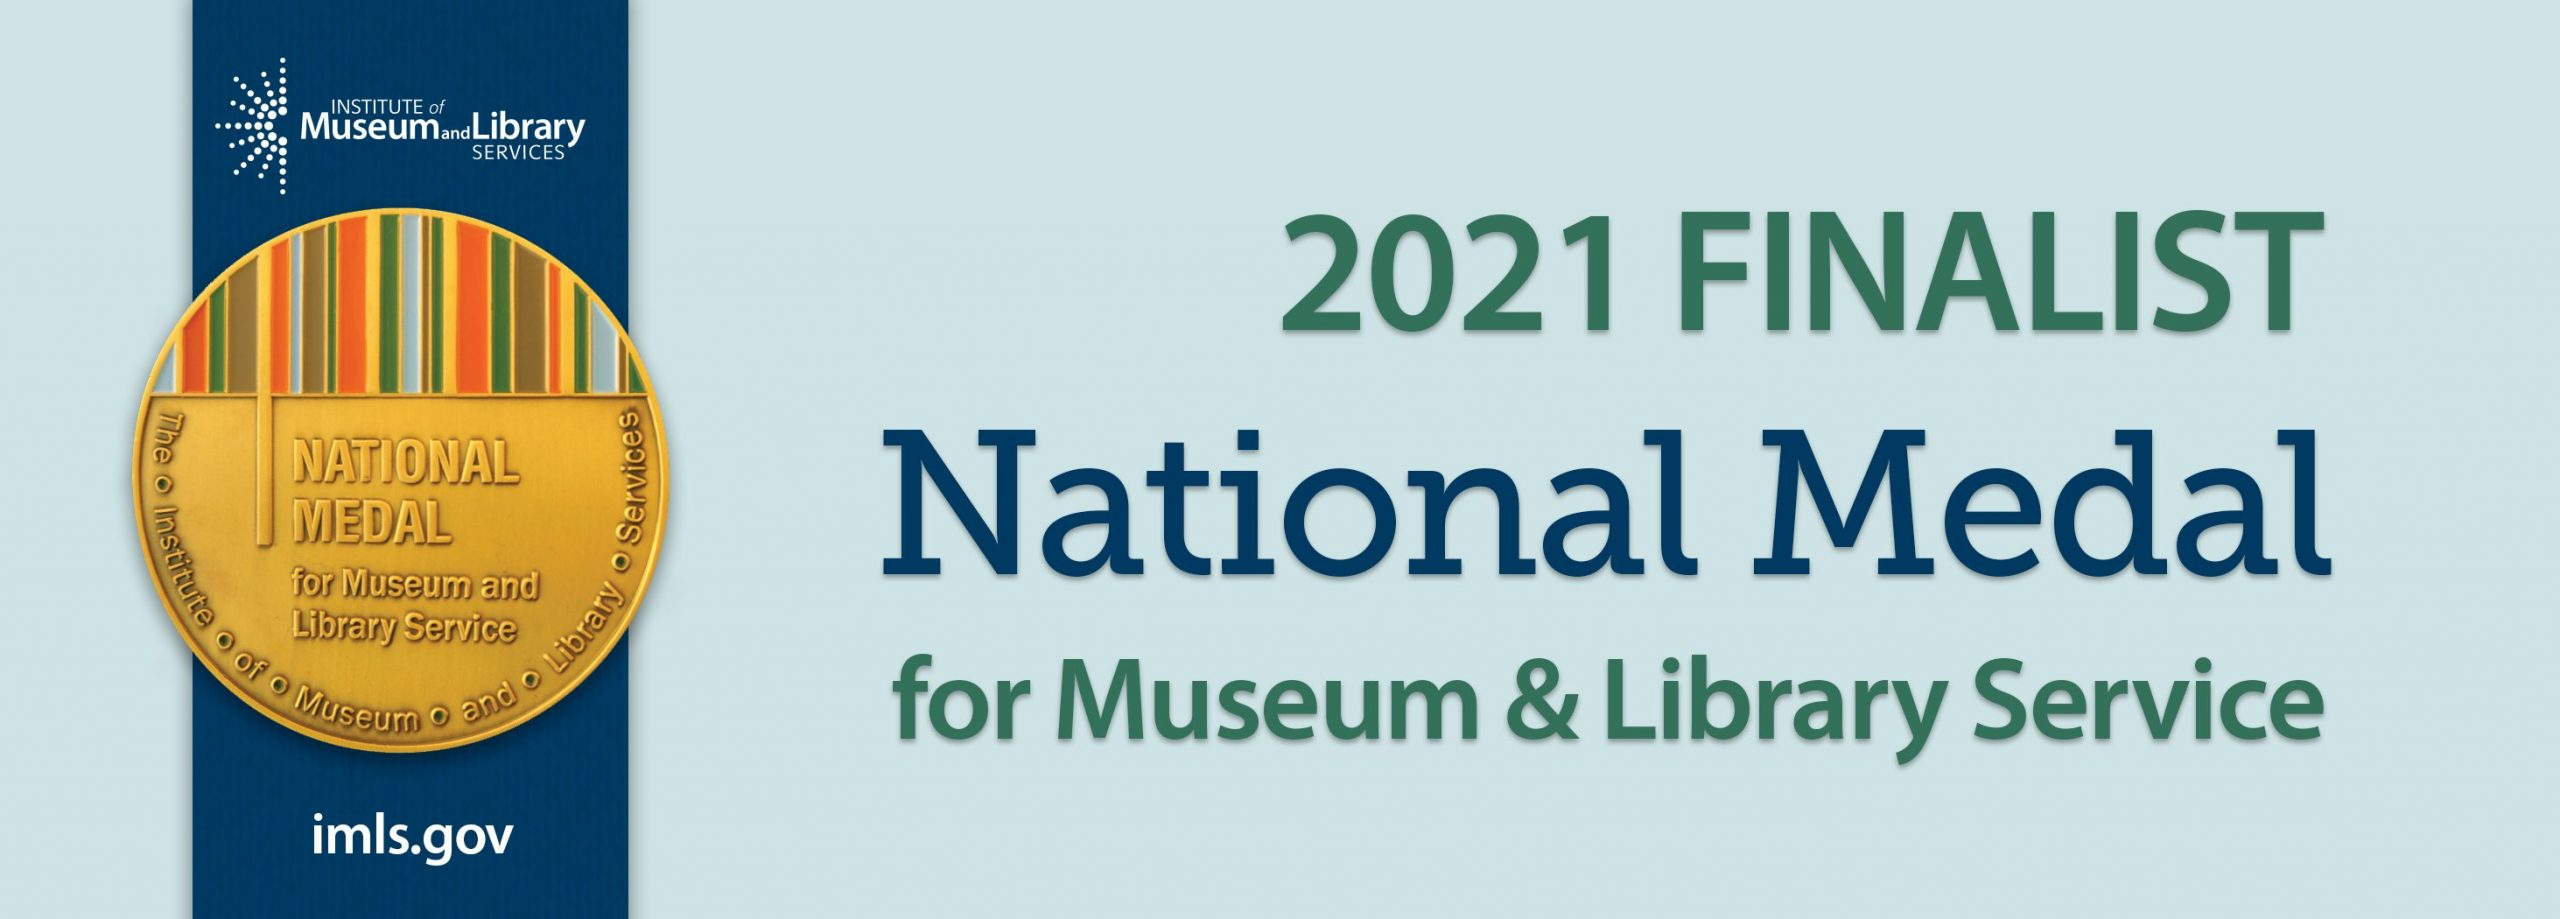 2021 National Medal for Museum and Library Service Finalist